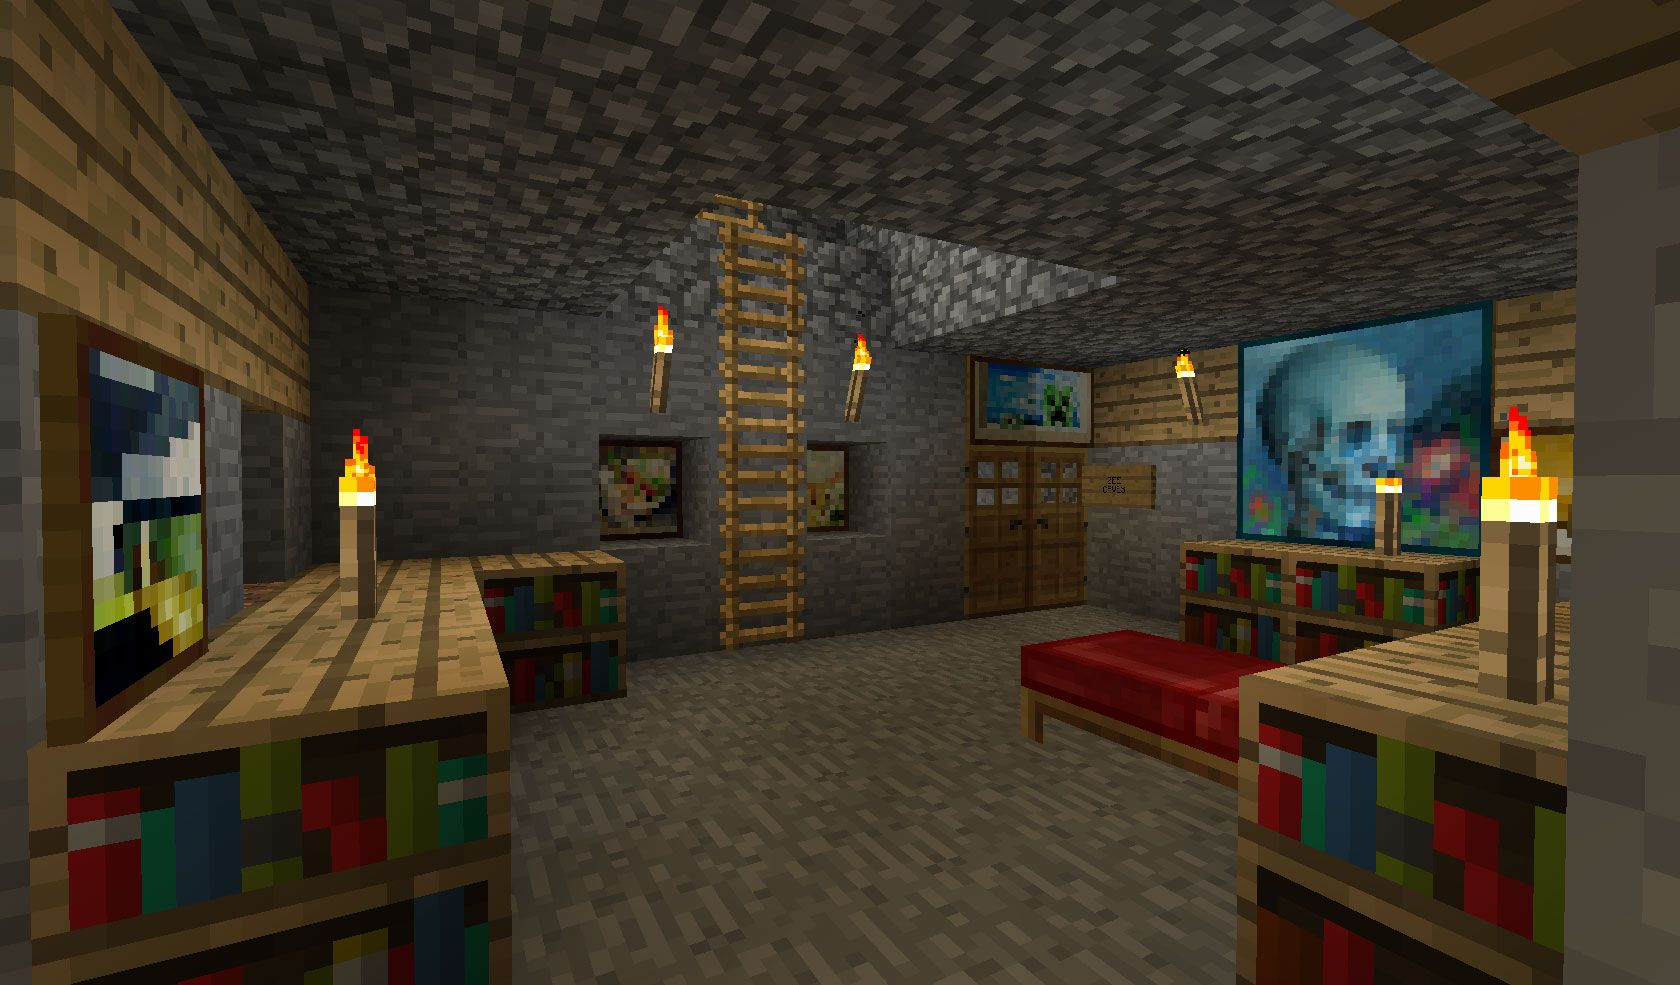 minecraft room ideas pocket edition | Minecraft | Pinterest ...